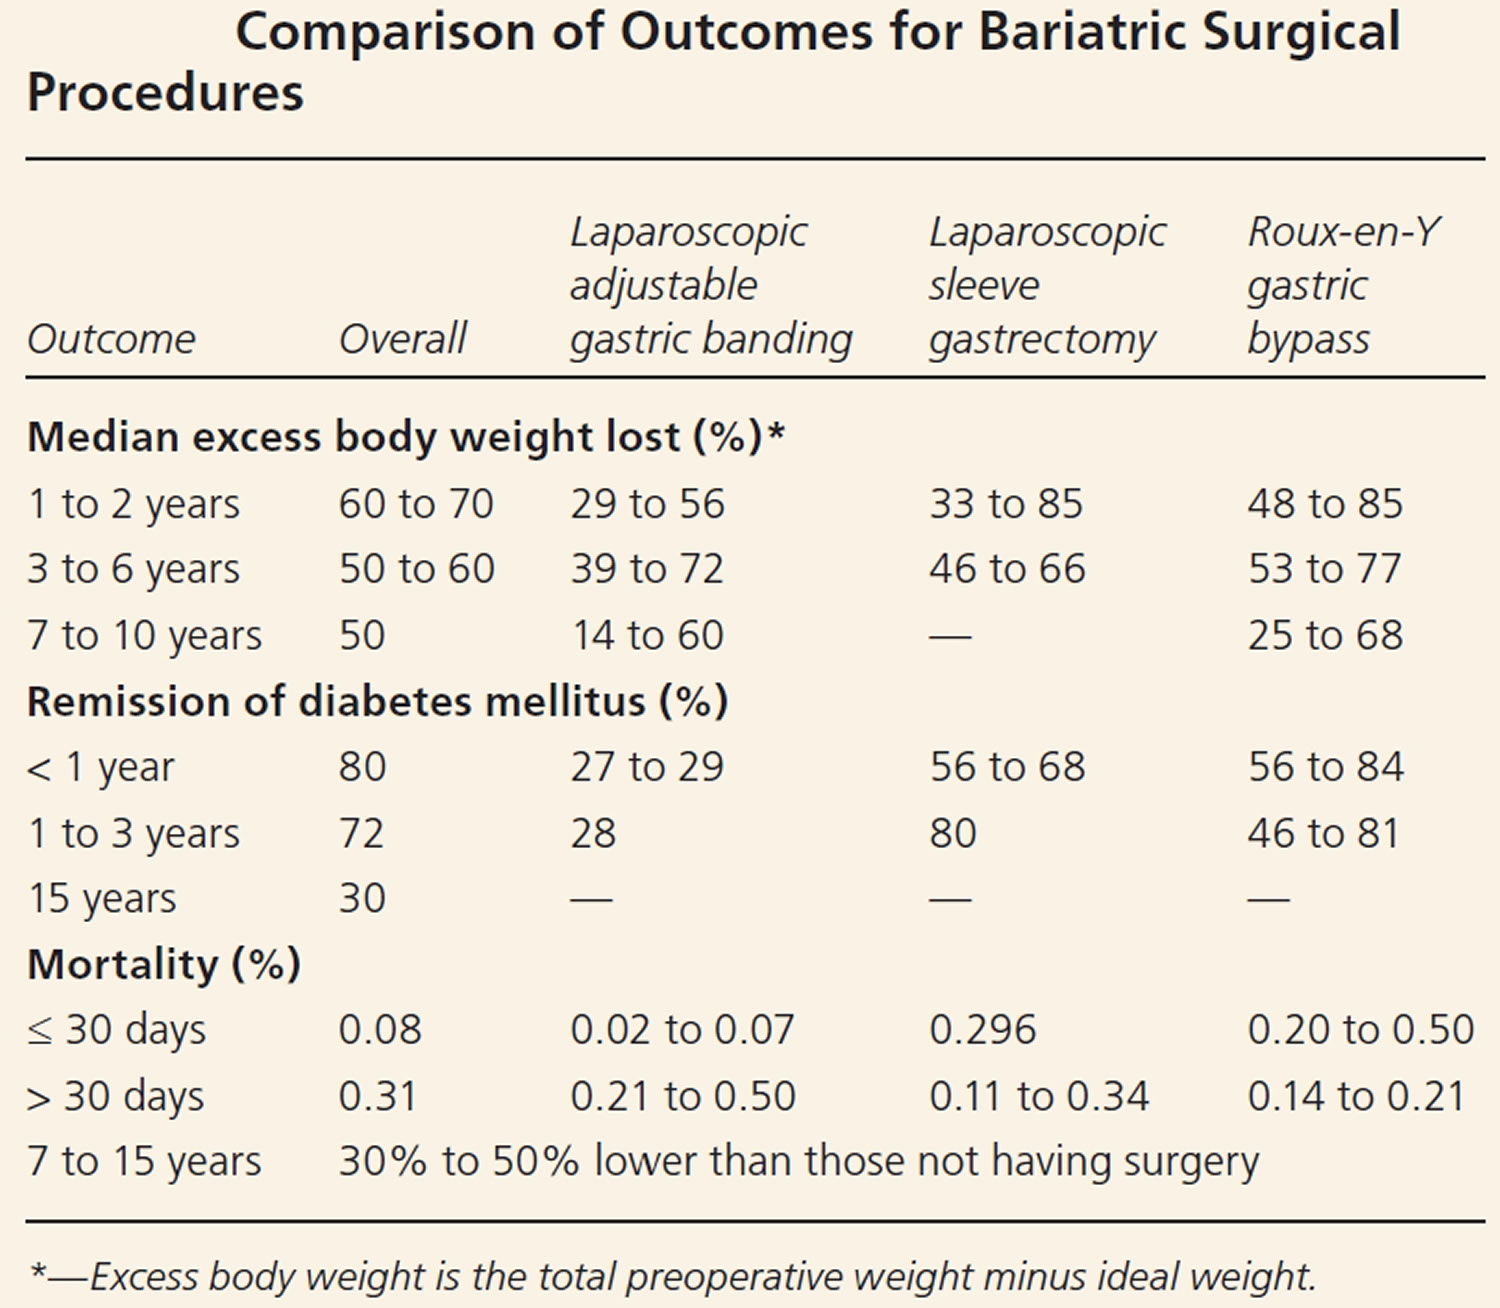 comparison of outcomes for bariatric surgical procedures